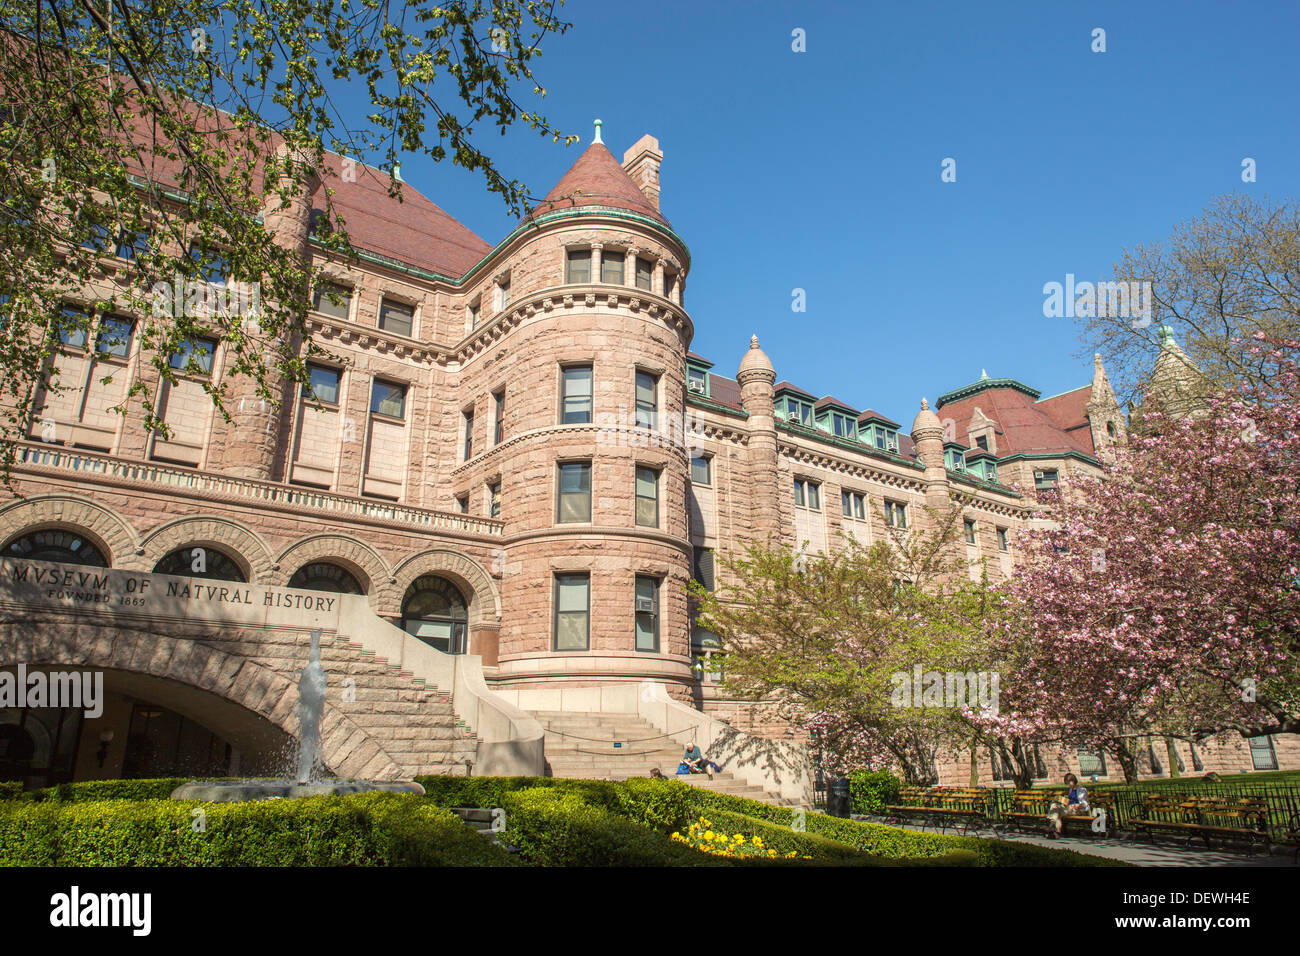 AMERICAN MUSEUM OF NATURAL HISTORY UPPER WESTSIDE MANHATTAN NEW YORK CITY USA - Stock Image